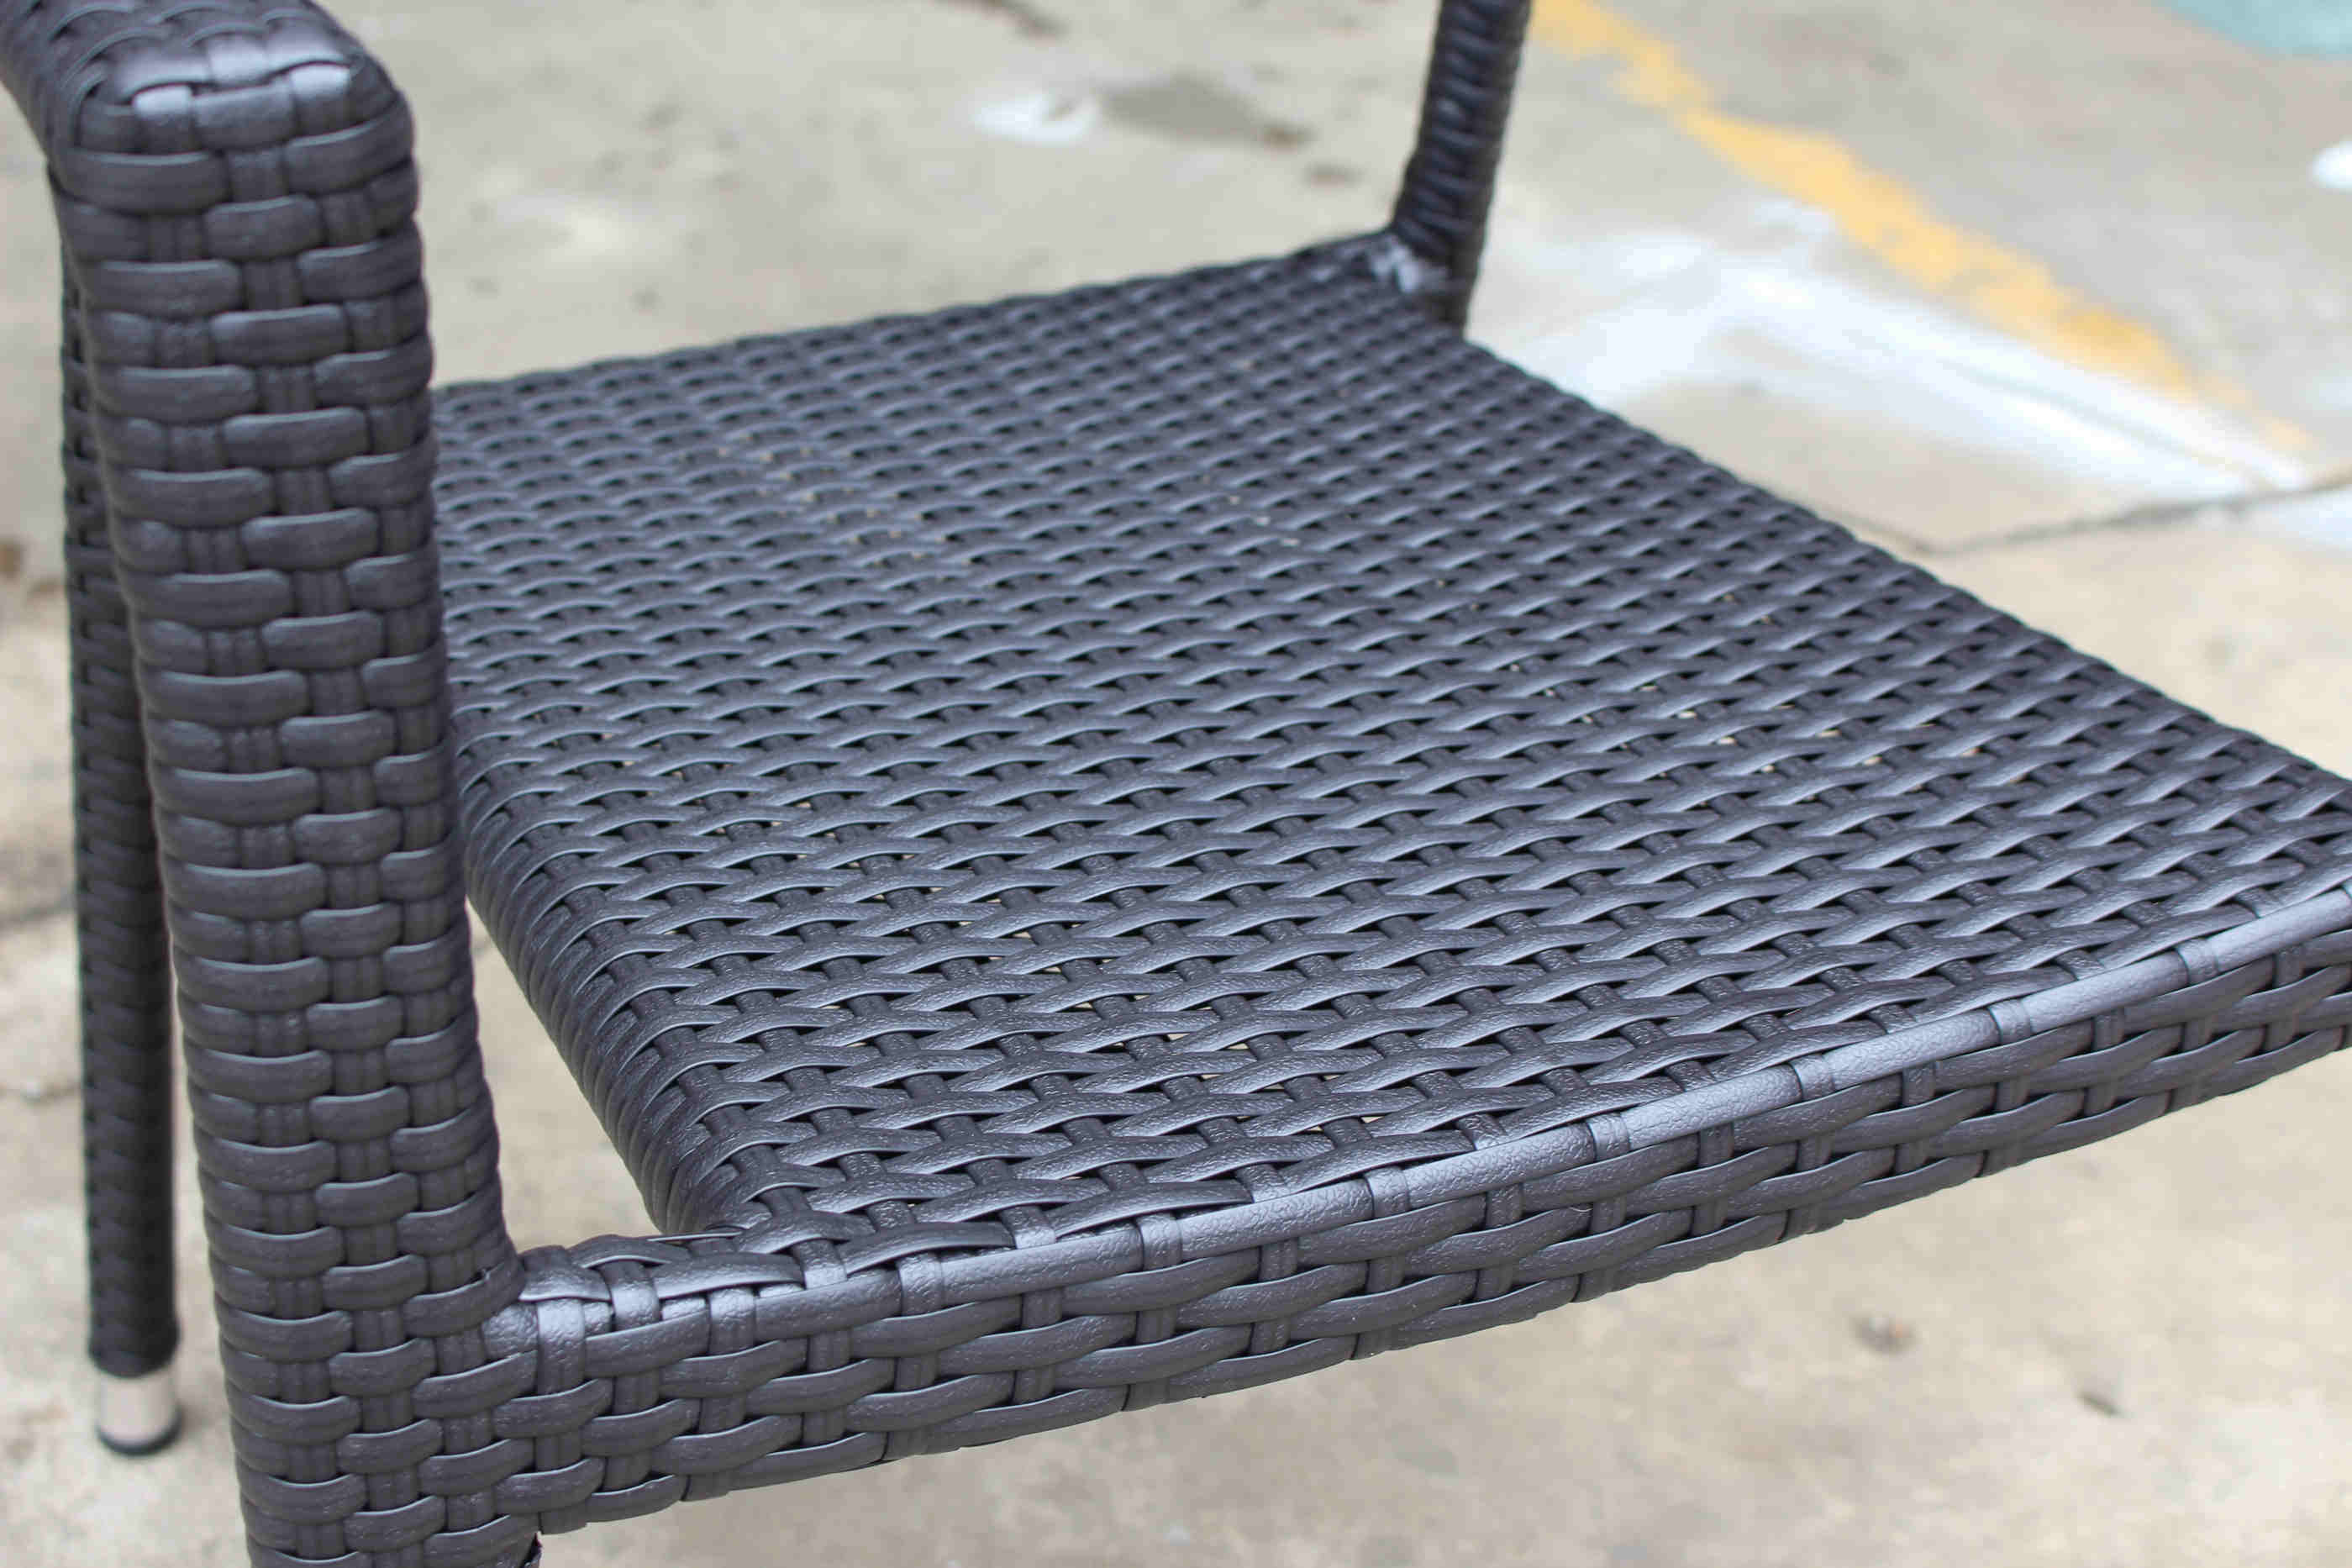 Dining Chair Woven Rattan Chair Outdoor Furniture Cafe Restaurant Arm Chair